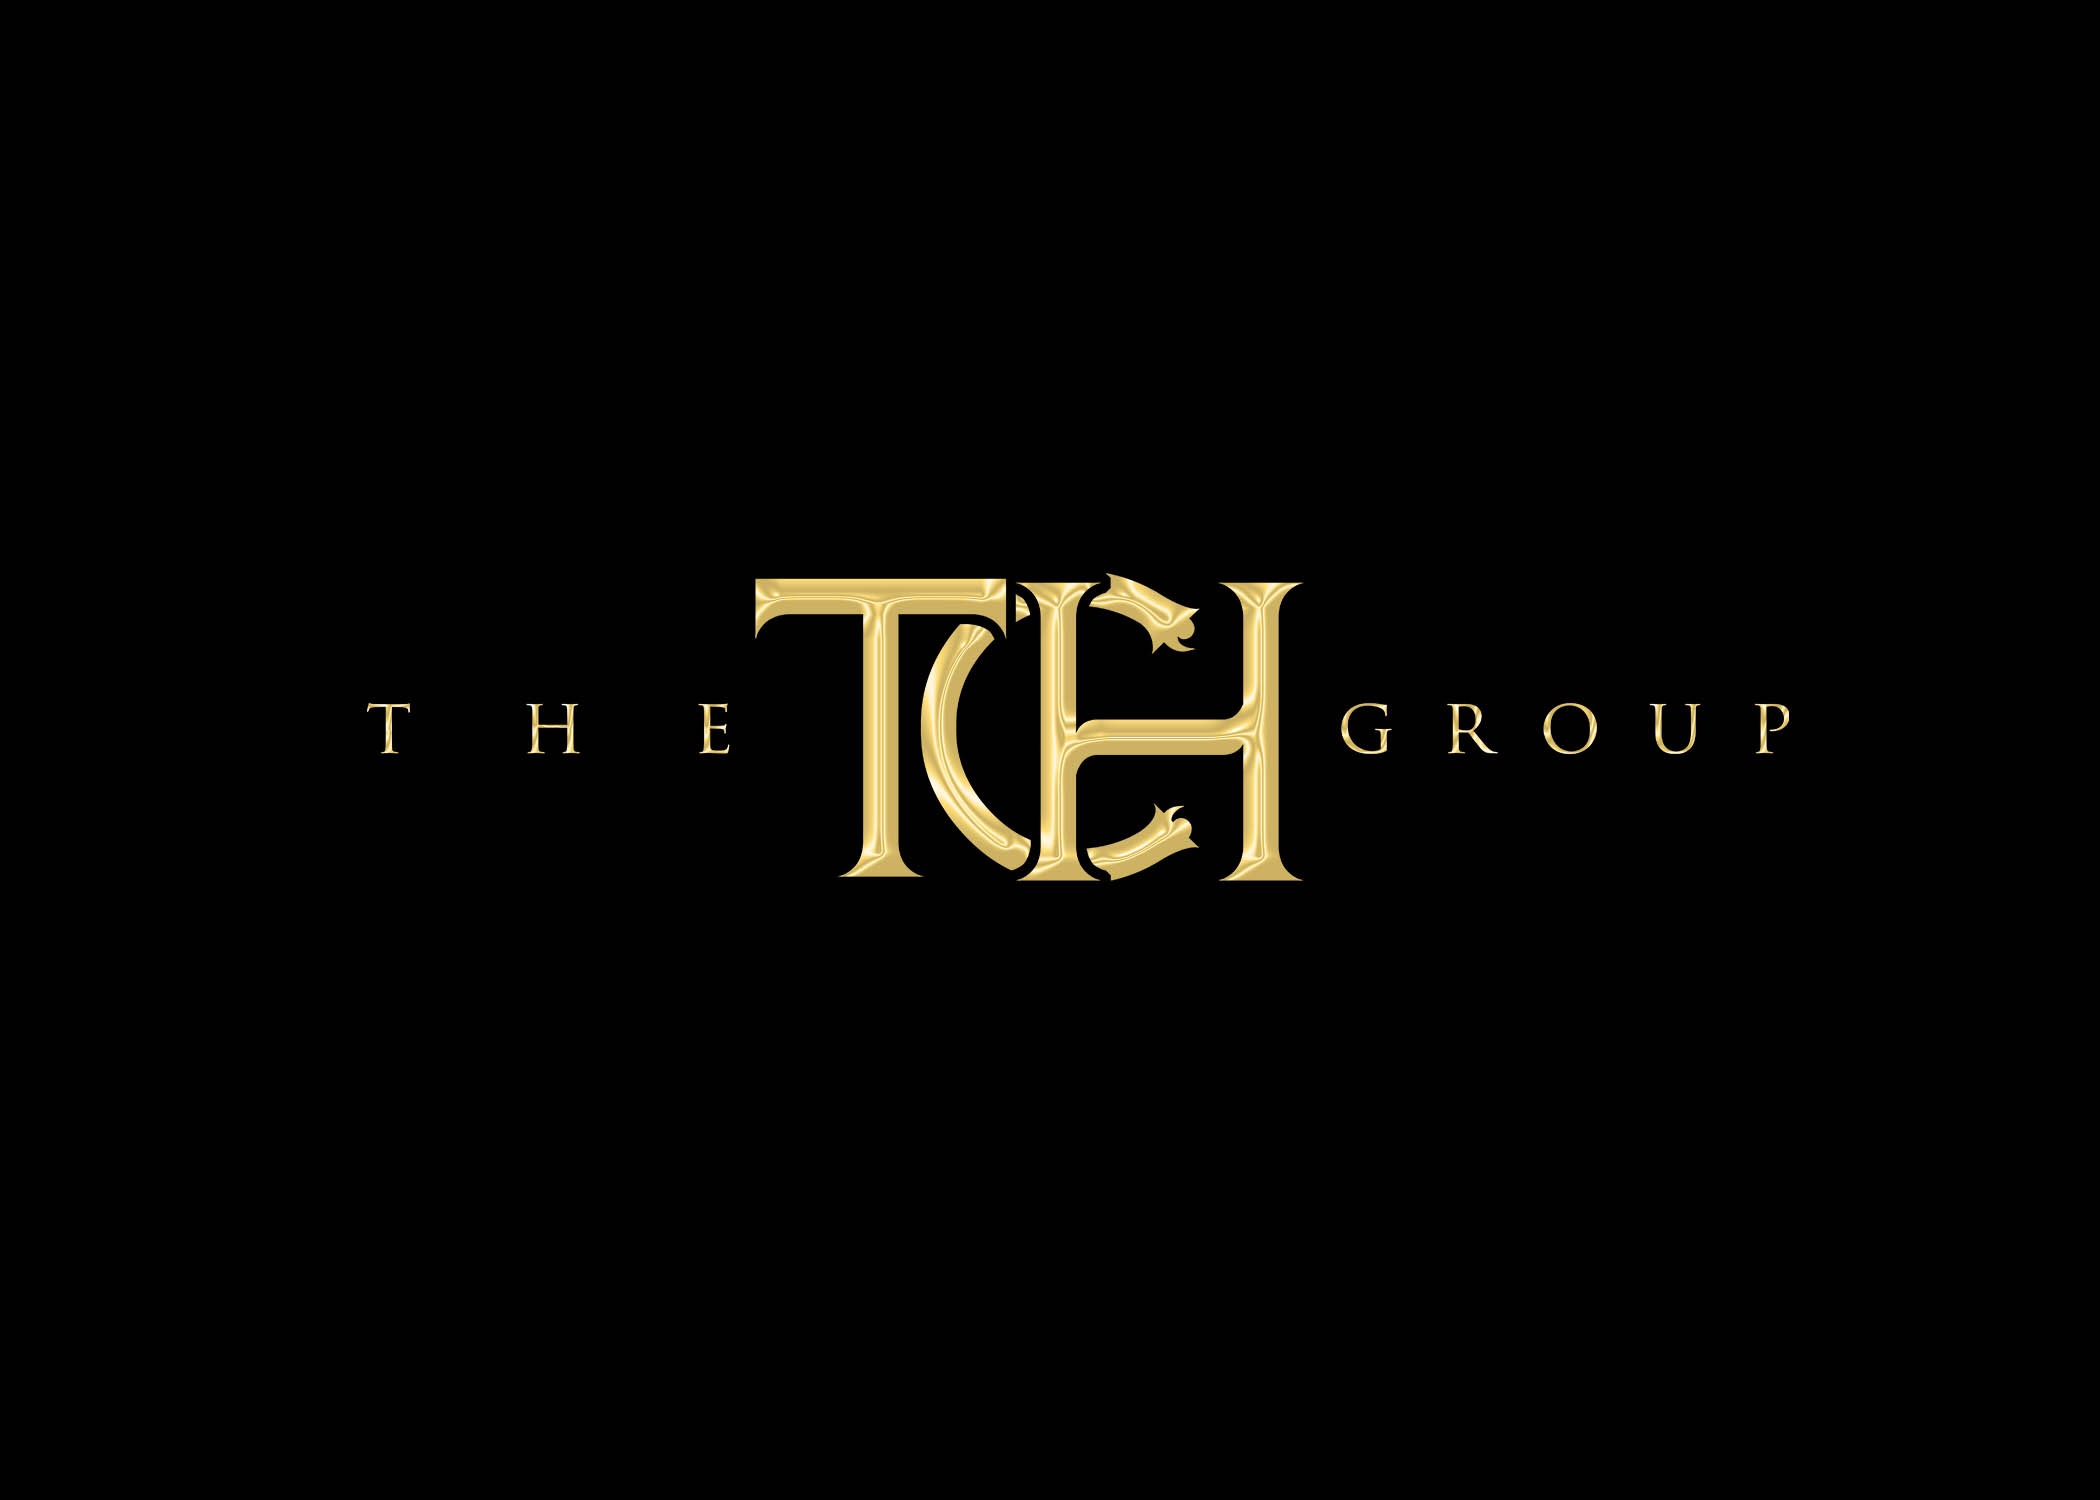 The TCH Group at RE/MAX Generation logo